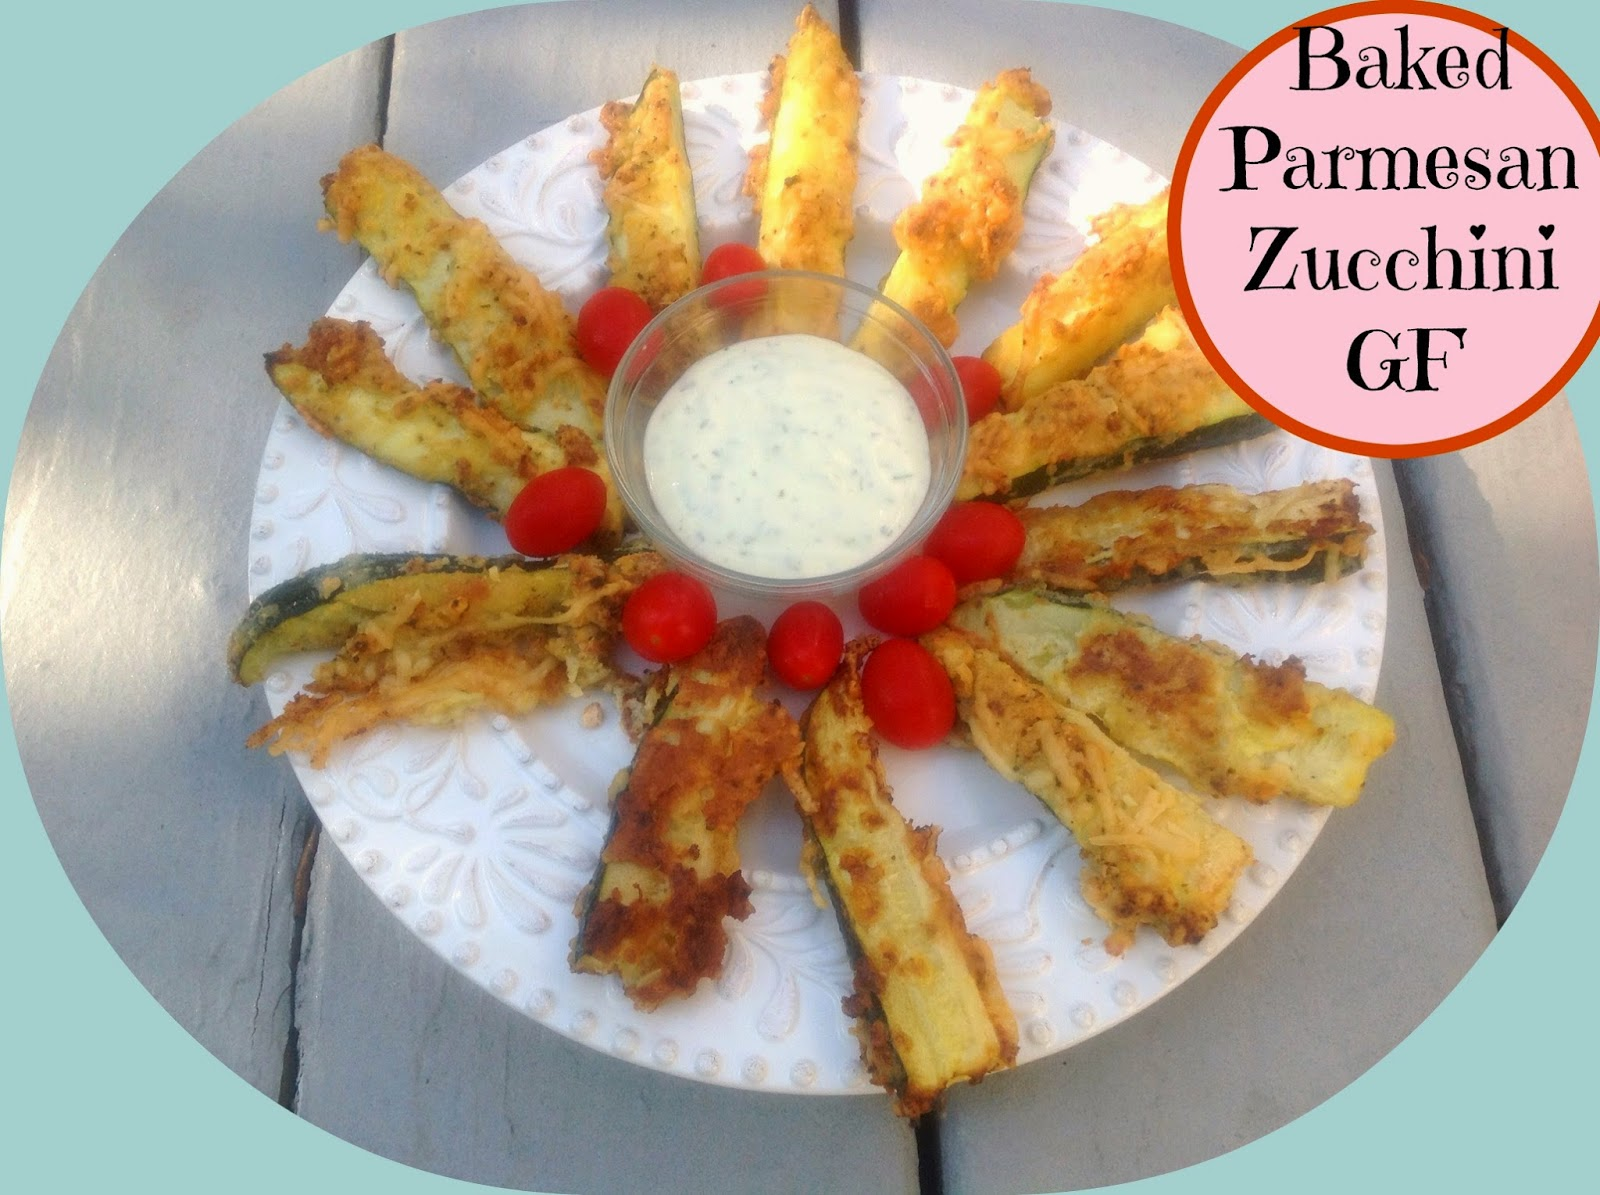 gluten free zucchini cheese stick appetizer